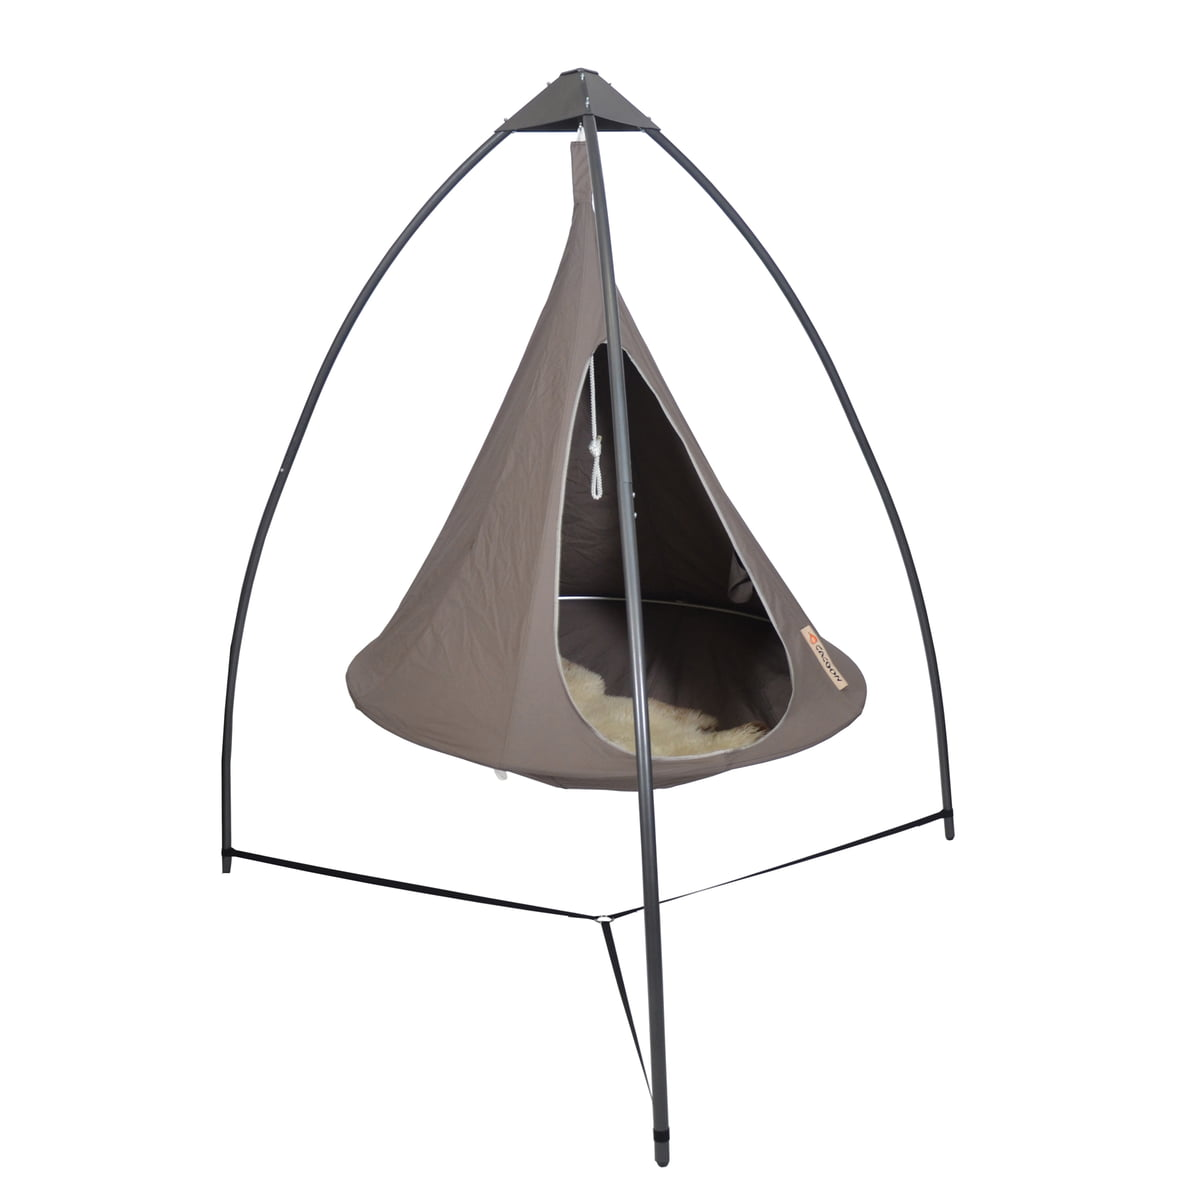 The Cacoon Metal frame for Swing Chair